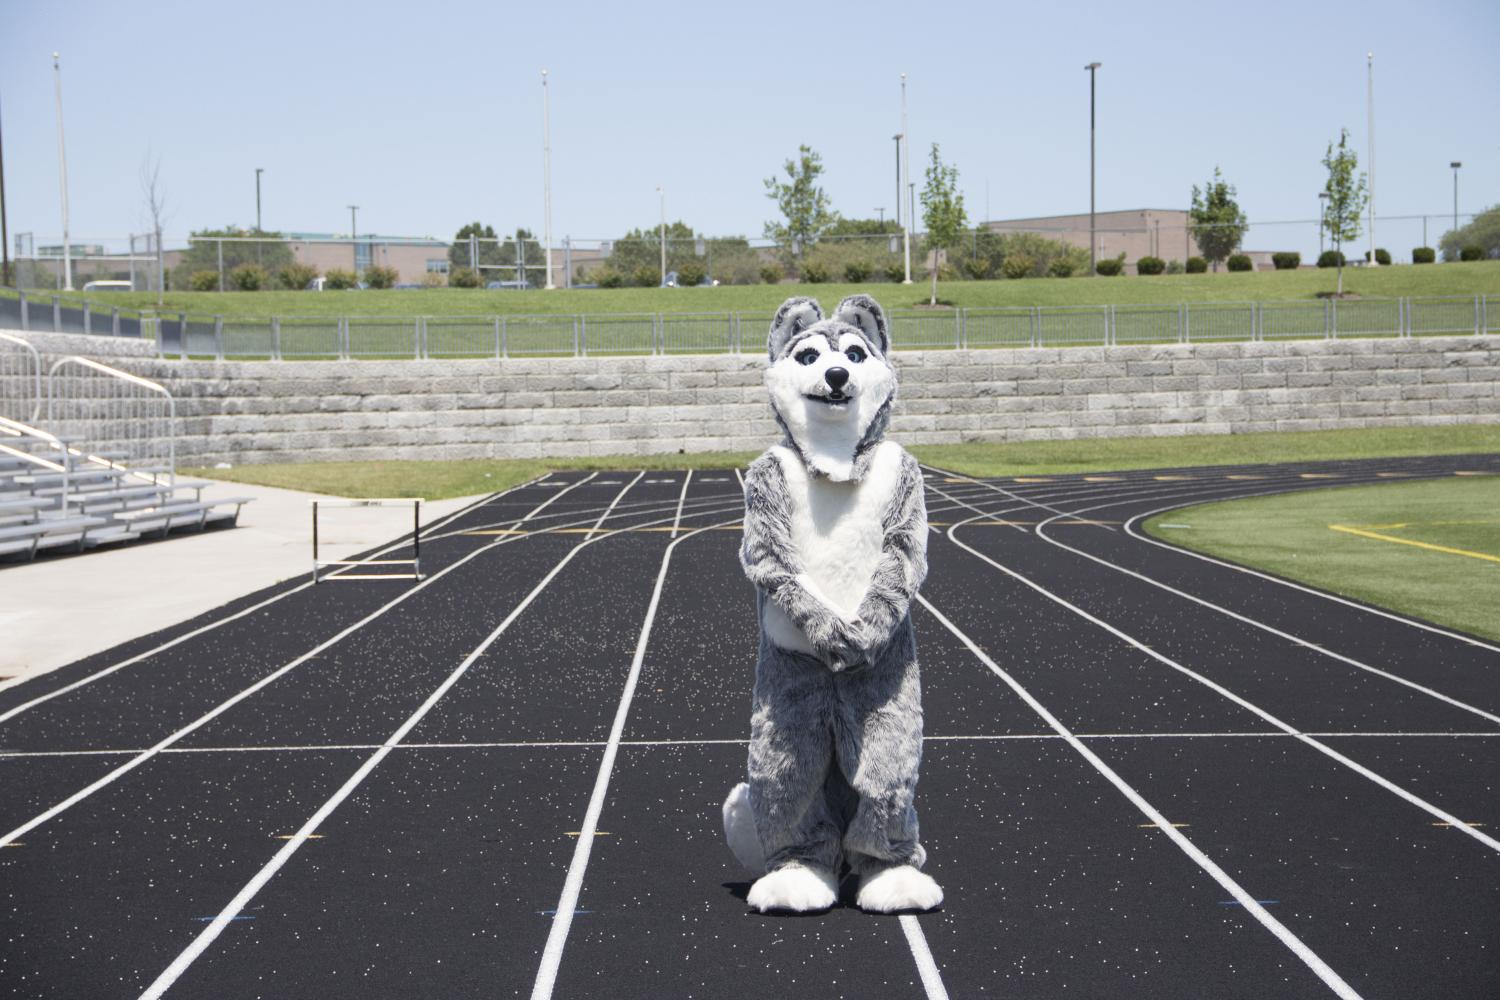 Chamberlain poses in the full husky mascot outfit.